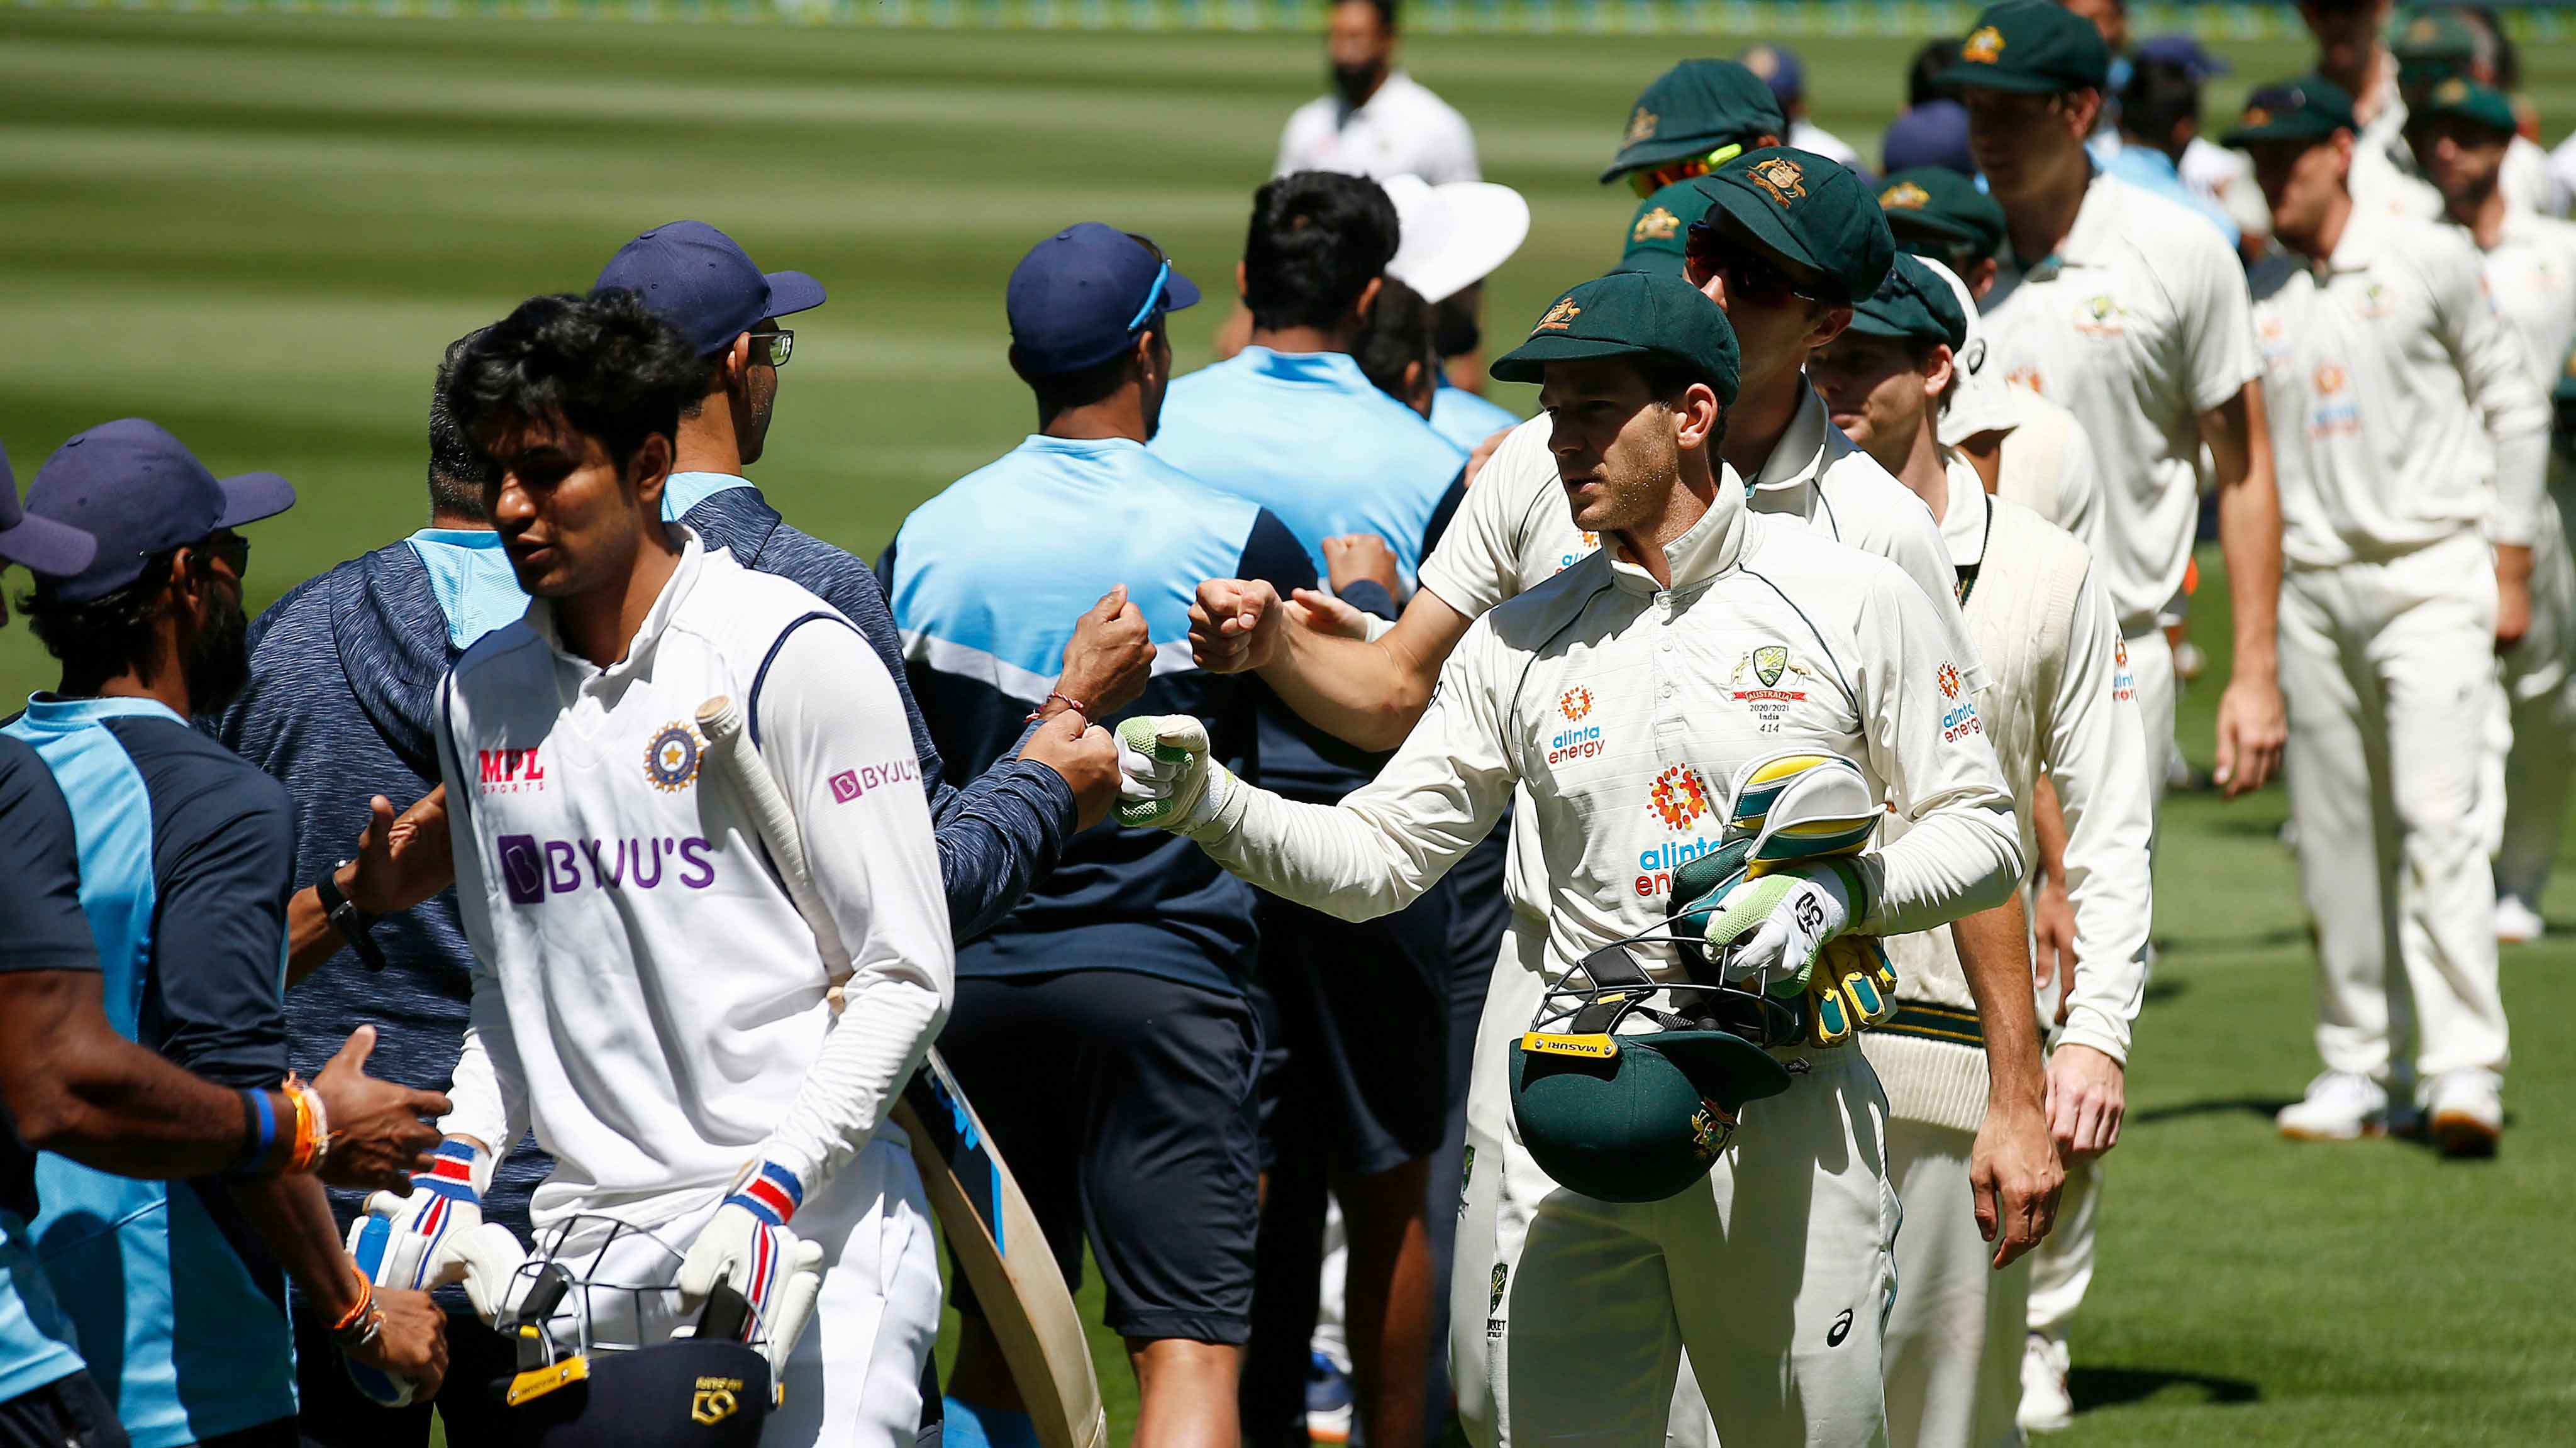 India levelled the series in a gripping Test match played in front of almost 90k fans across the four days at the MCG